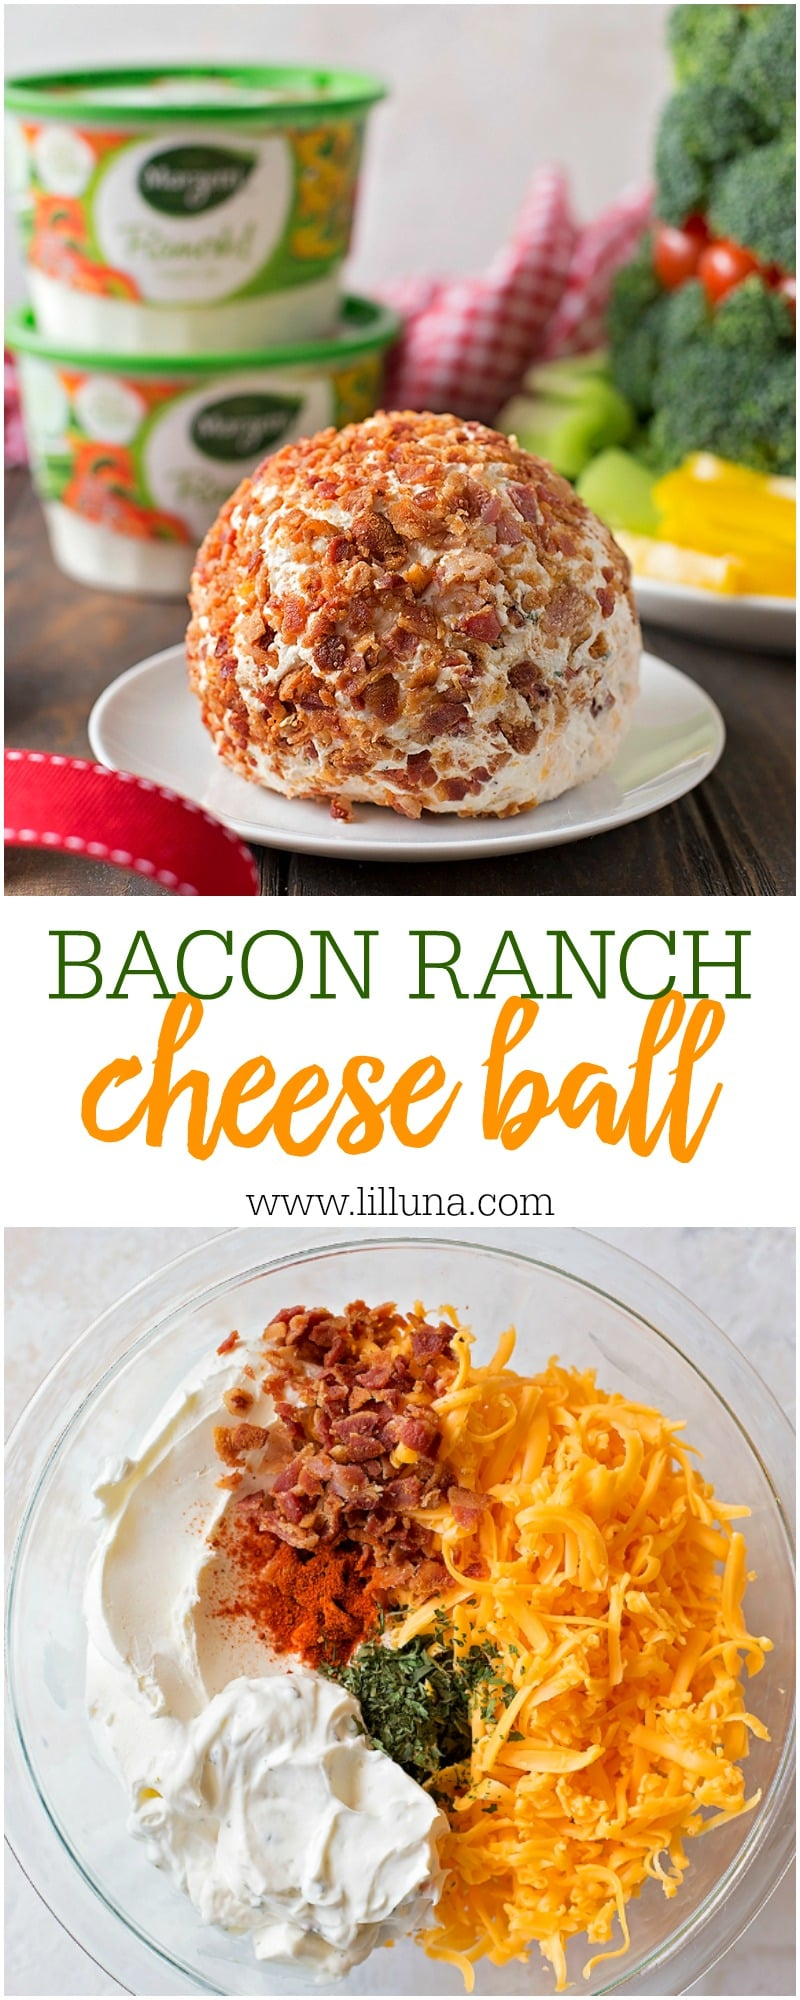 Delicious and easy Bacon Ranch cheese ball recipe using Marzetti Dips. This simple and tasty appetizer is perfect for your next party!